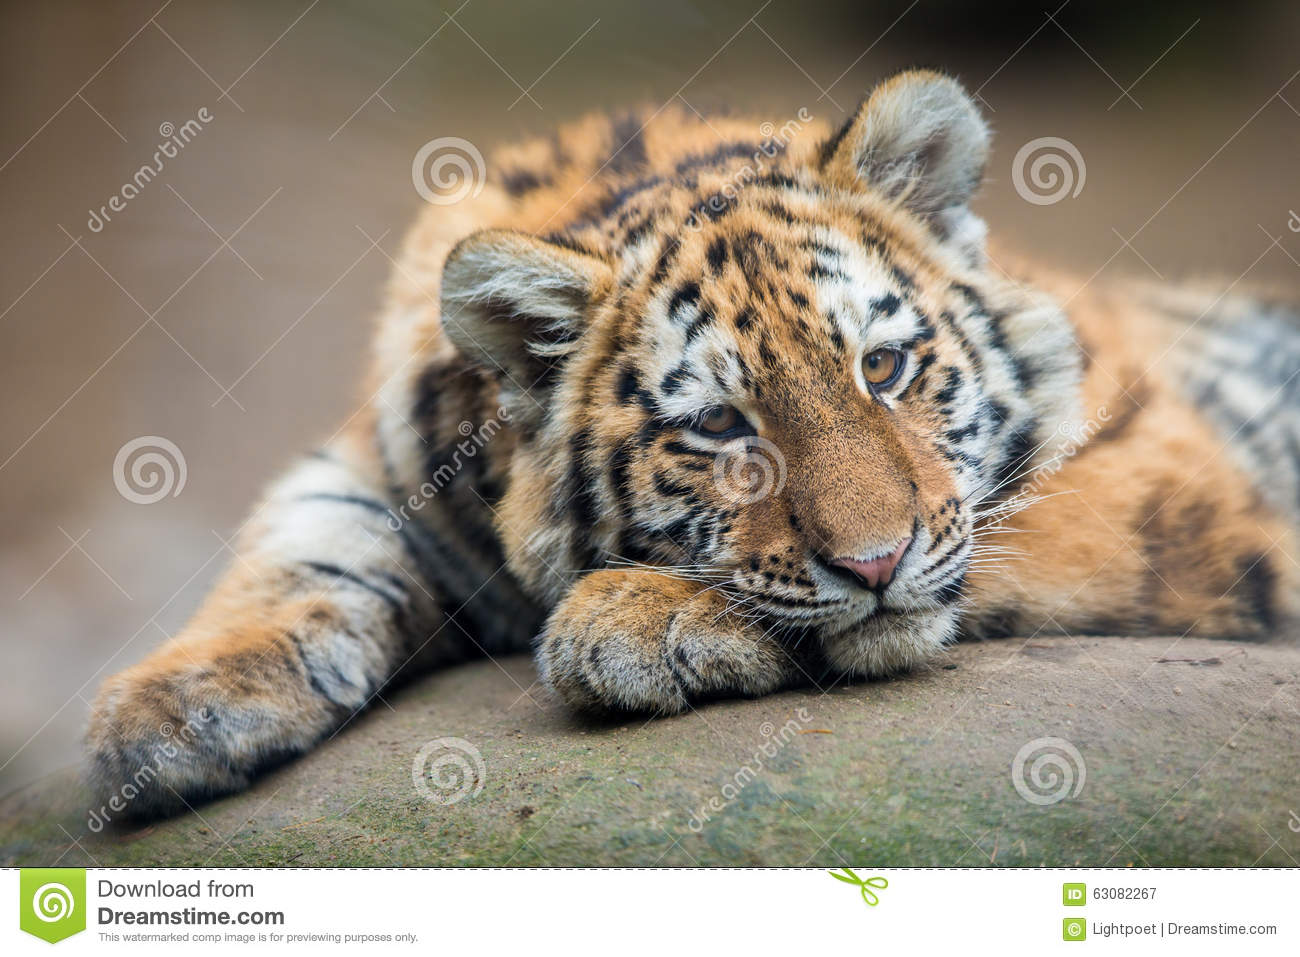 Cute tiger cub stock image image of east lazy mammal 63082267 download cute tiger cub stock image image of east lazy mammal 63082267 altavistaventures Images